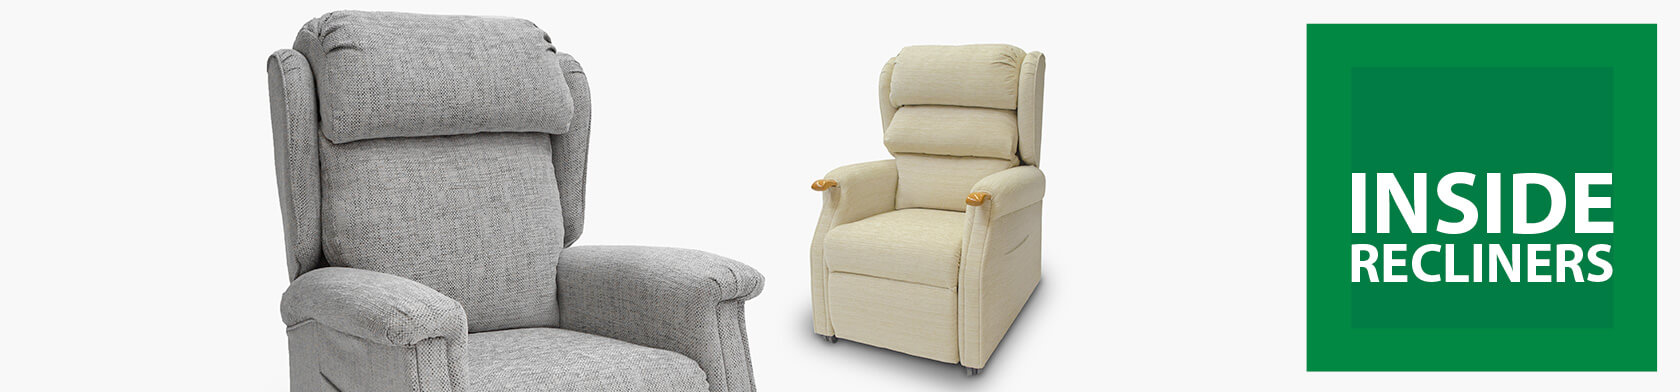 Two New Models Added to the Recliners Range